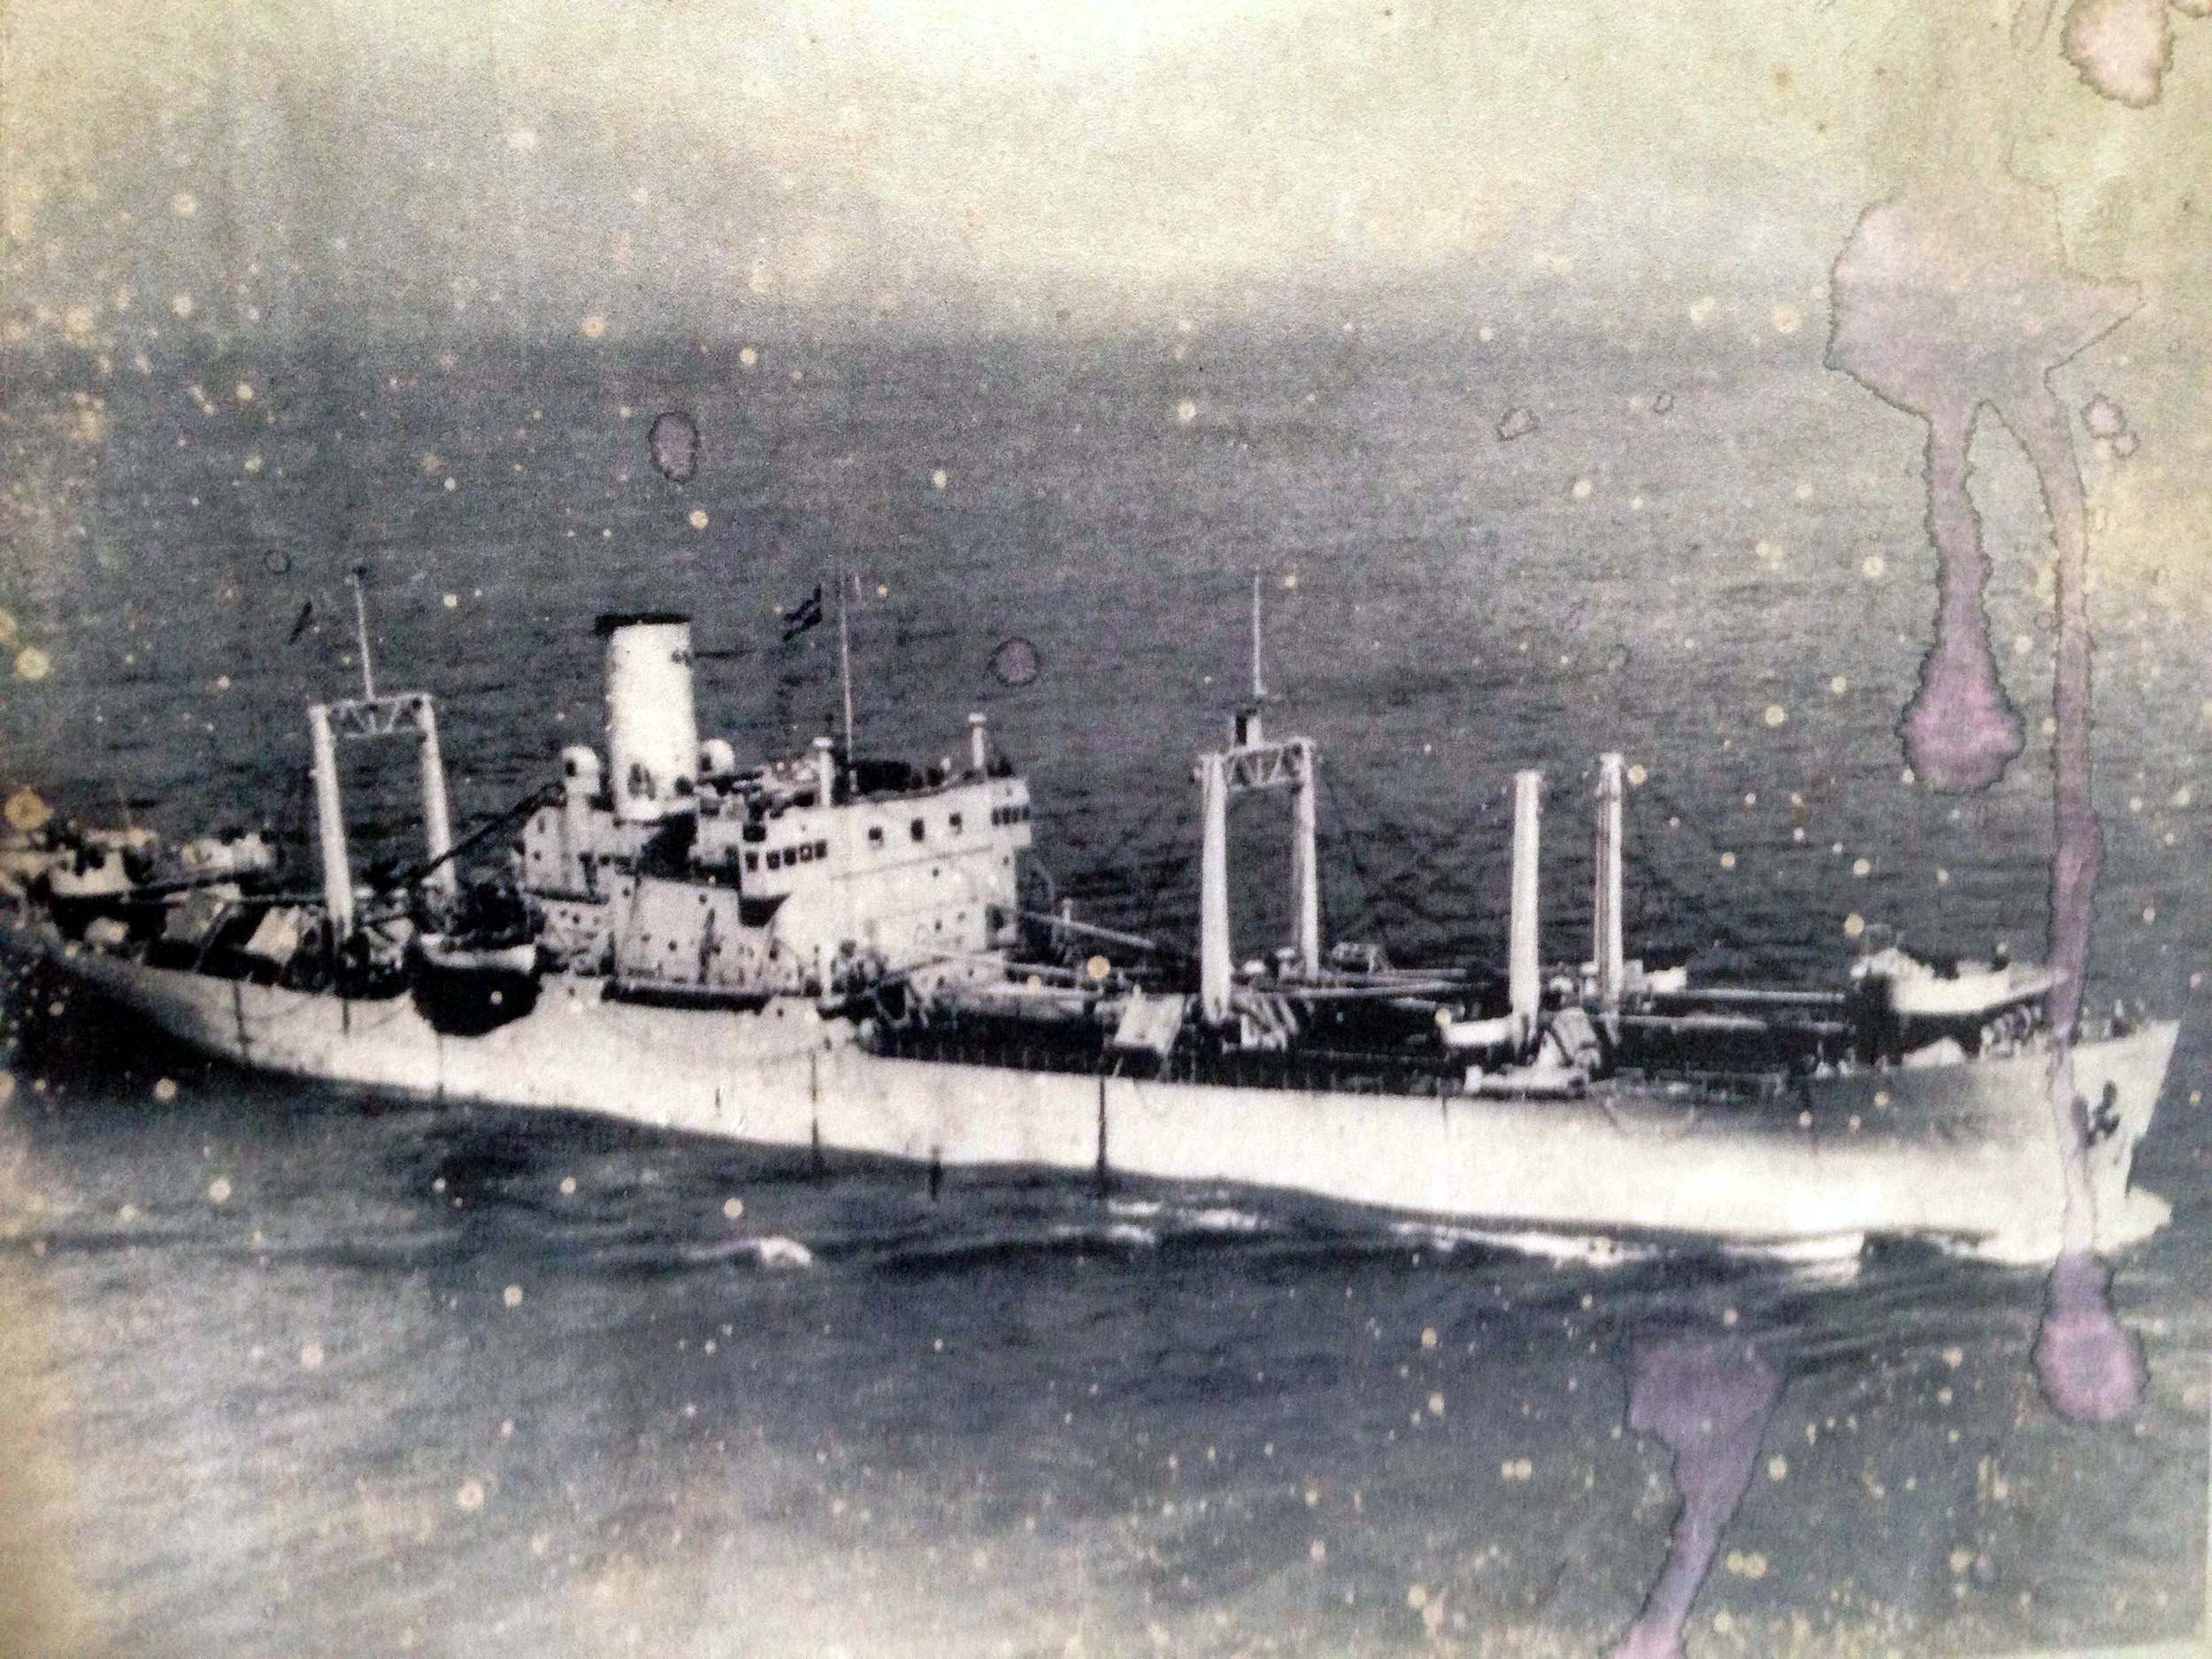 A ship in the South Pacific. Mail arrived on ships like this.